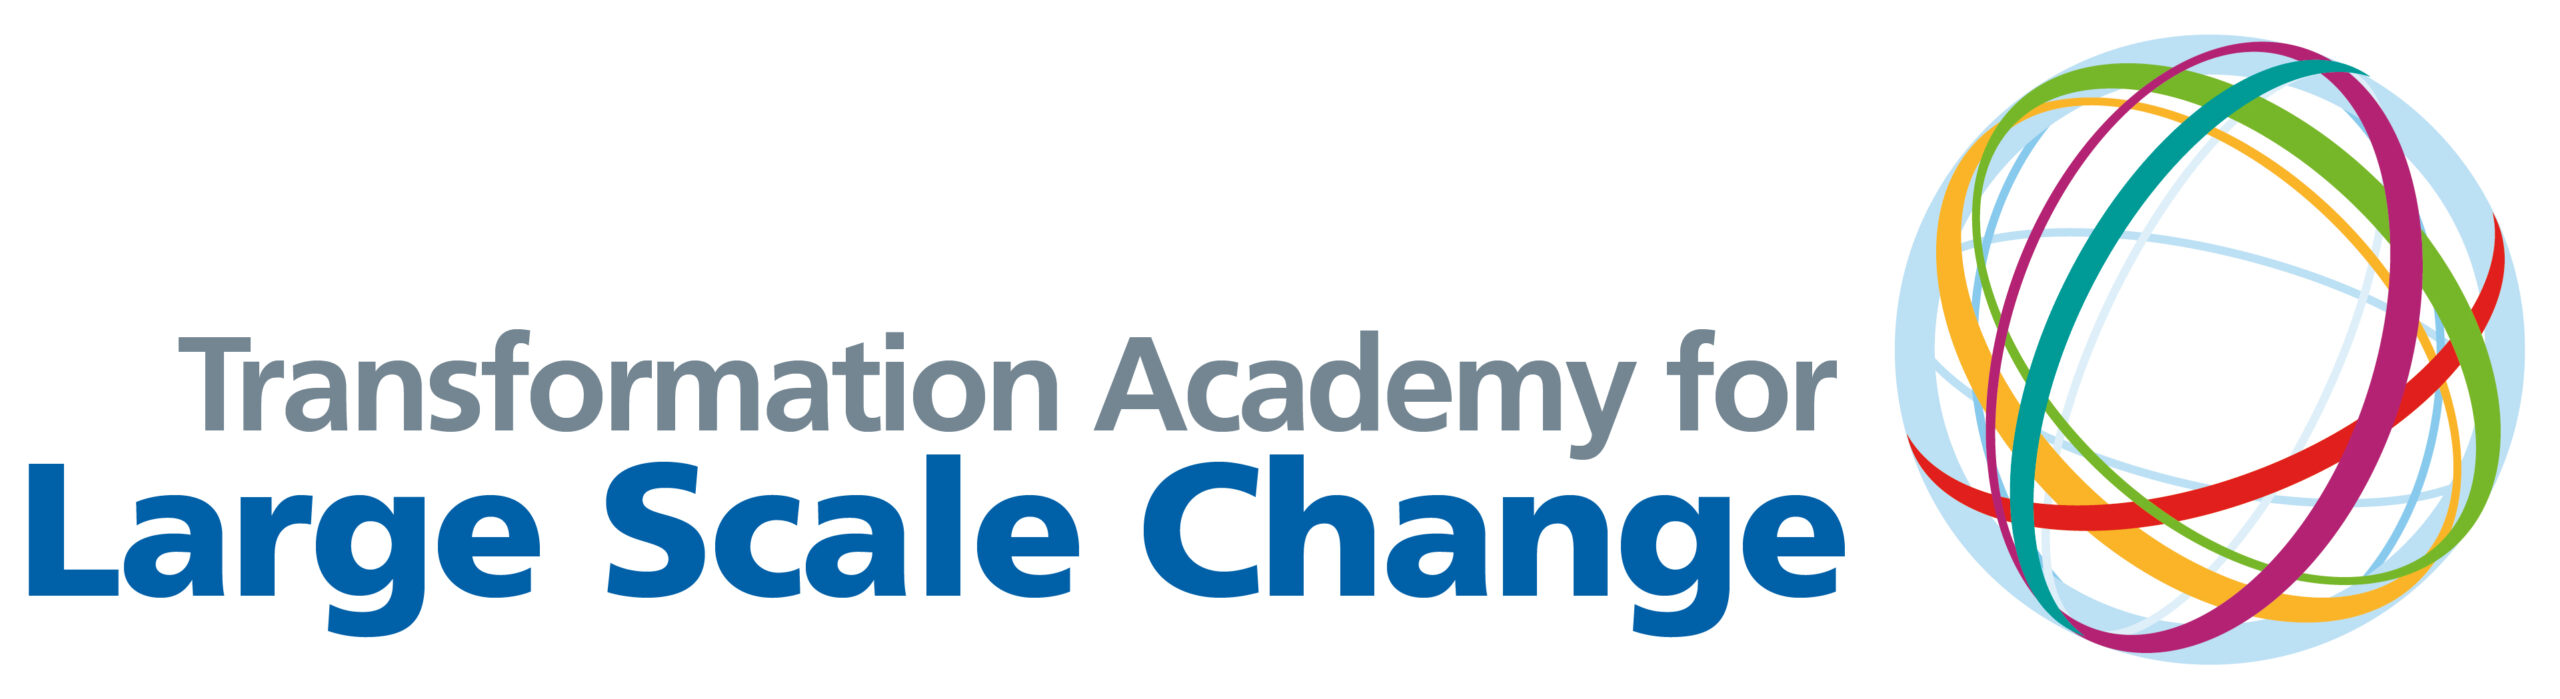 Transformation Academy for Large Scale Change logo